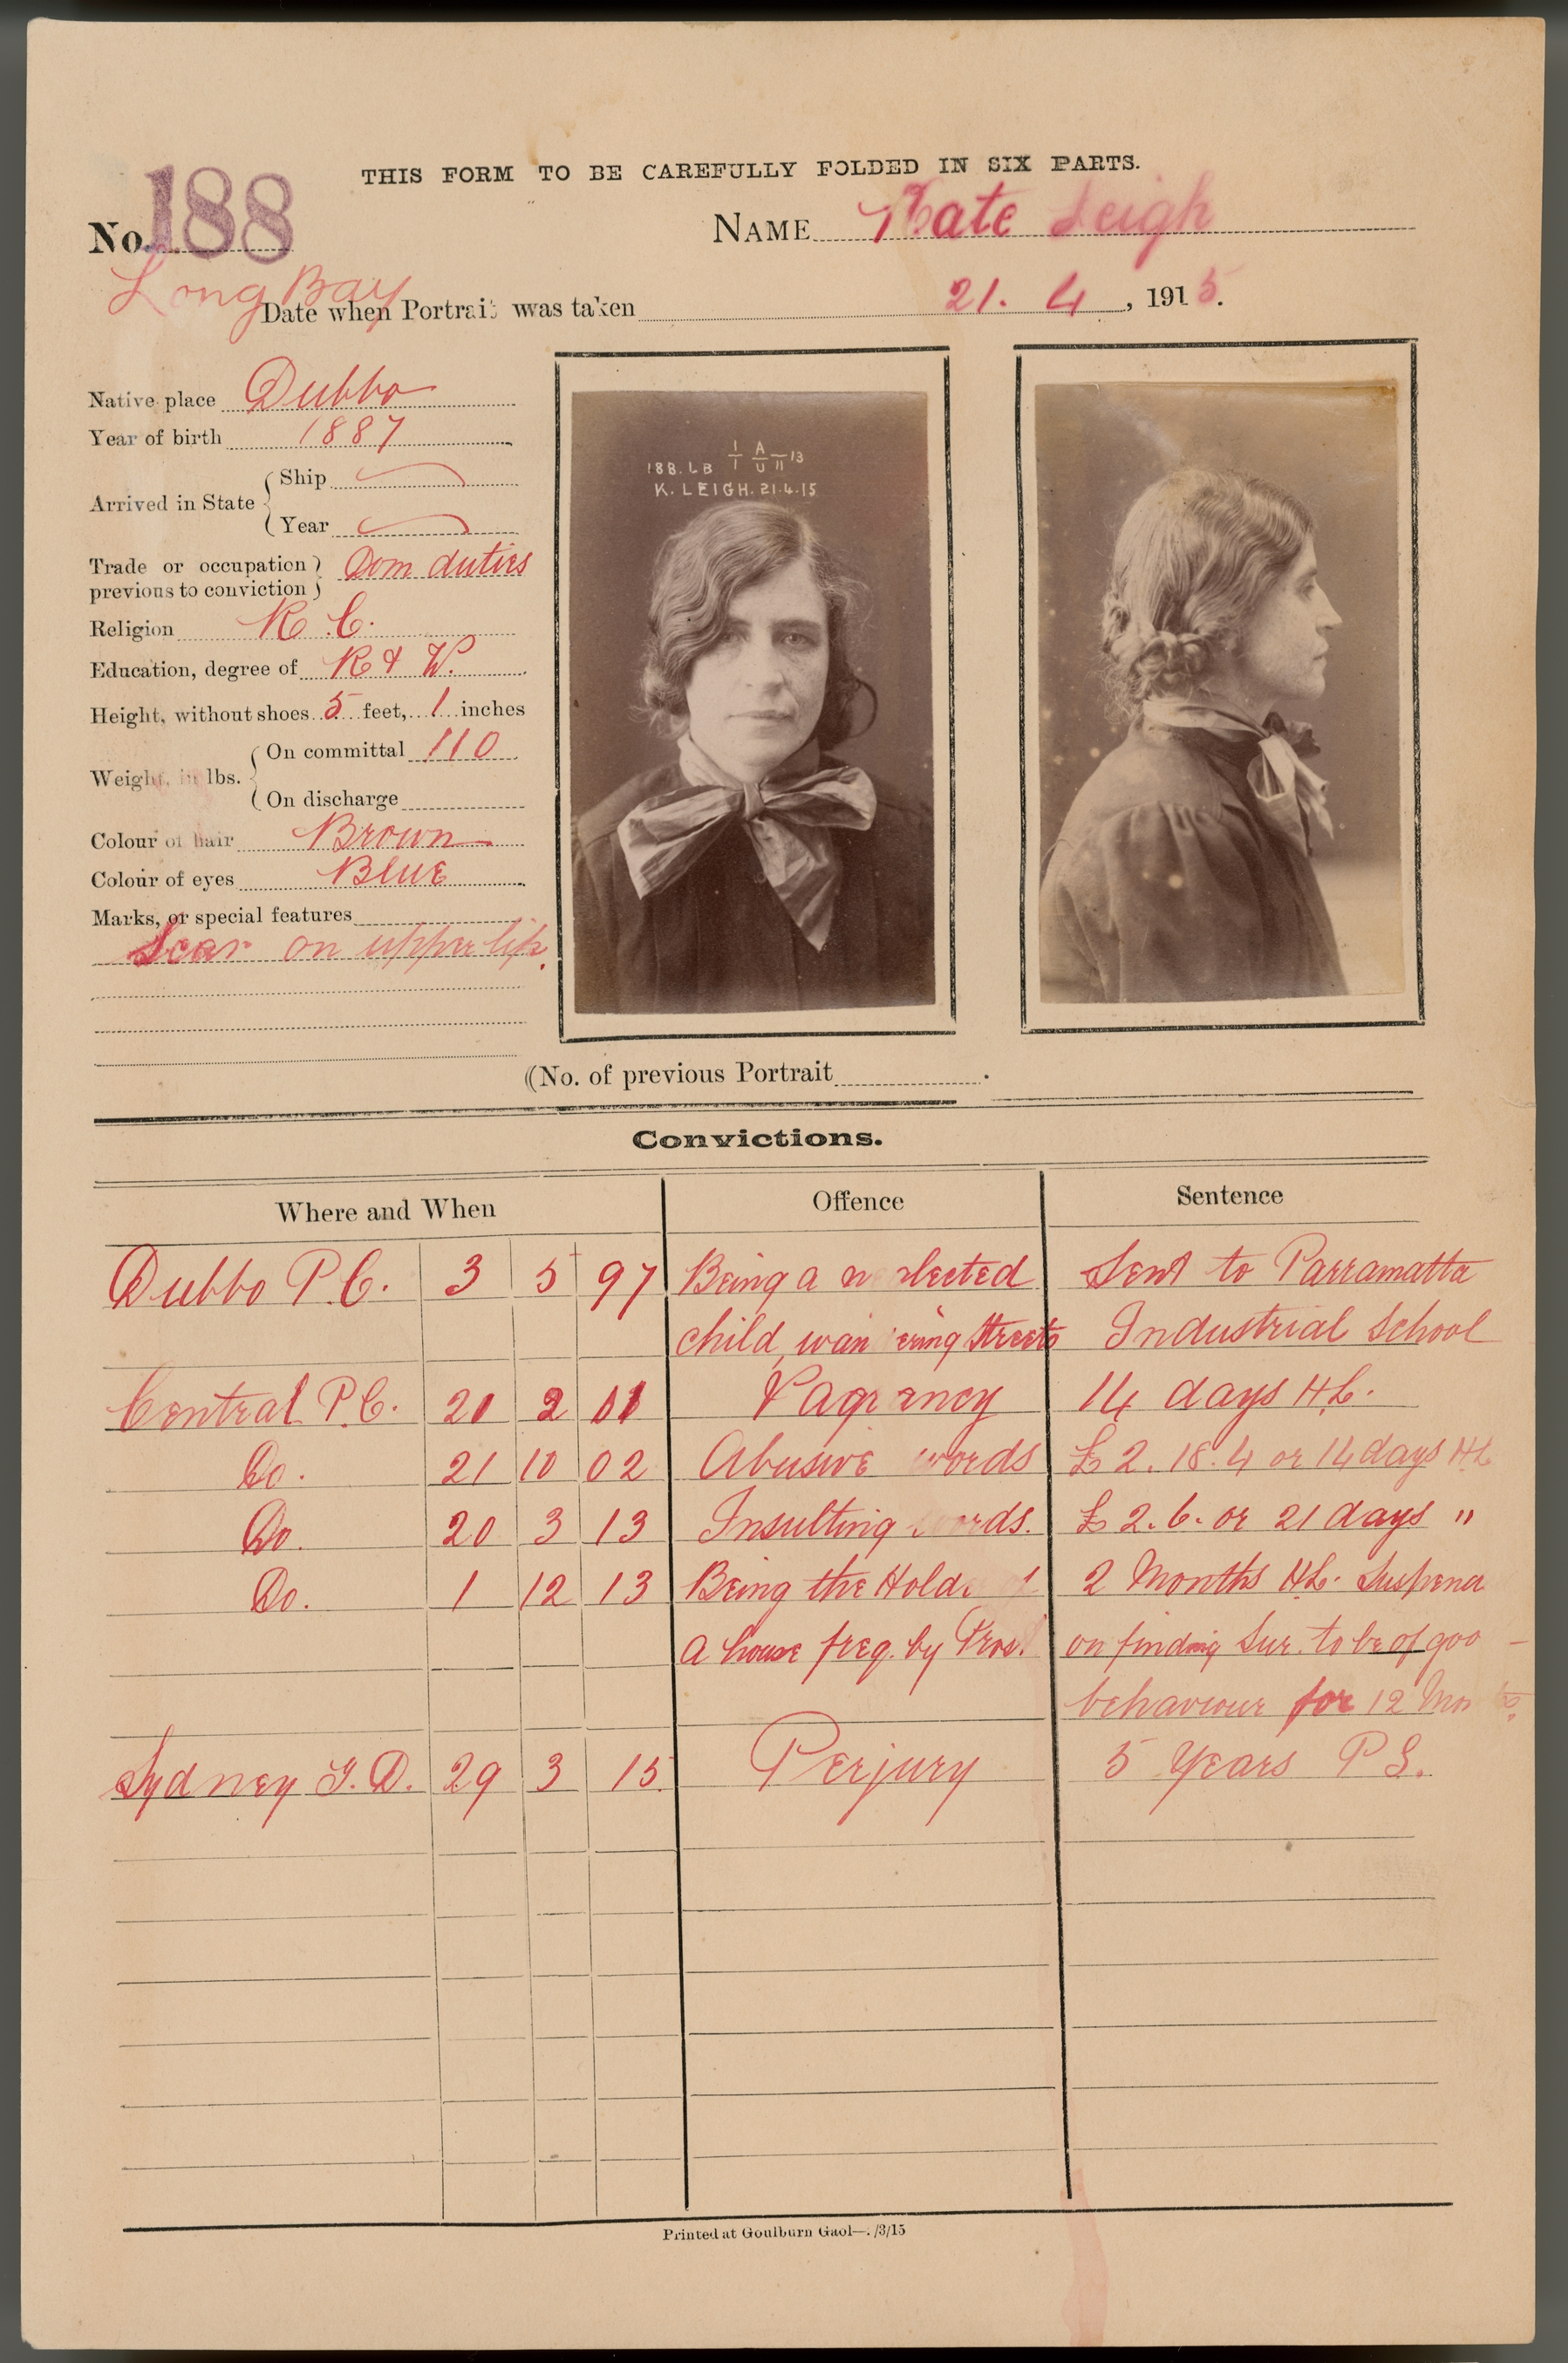 Page with written information, police photographs at the top right corner and table listing charges below.